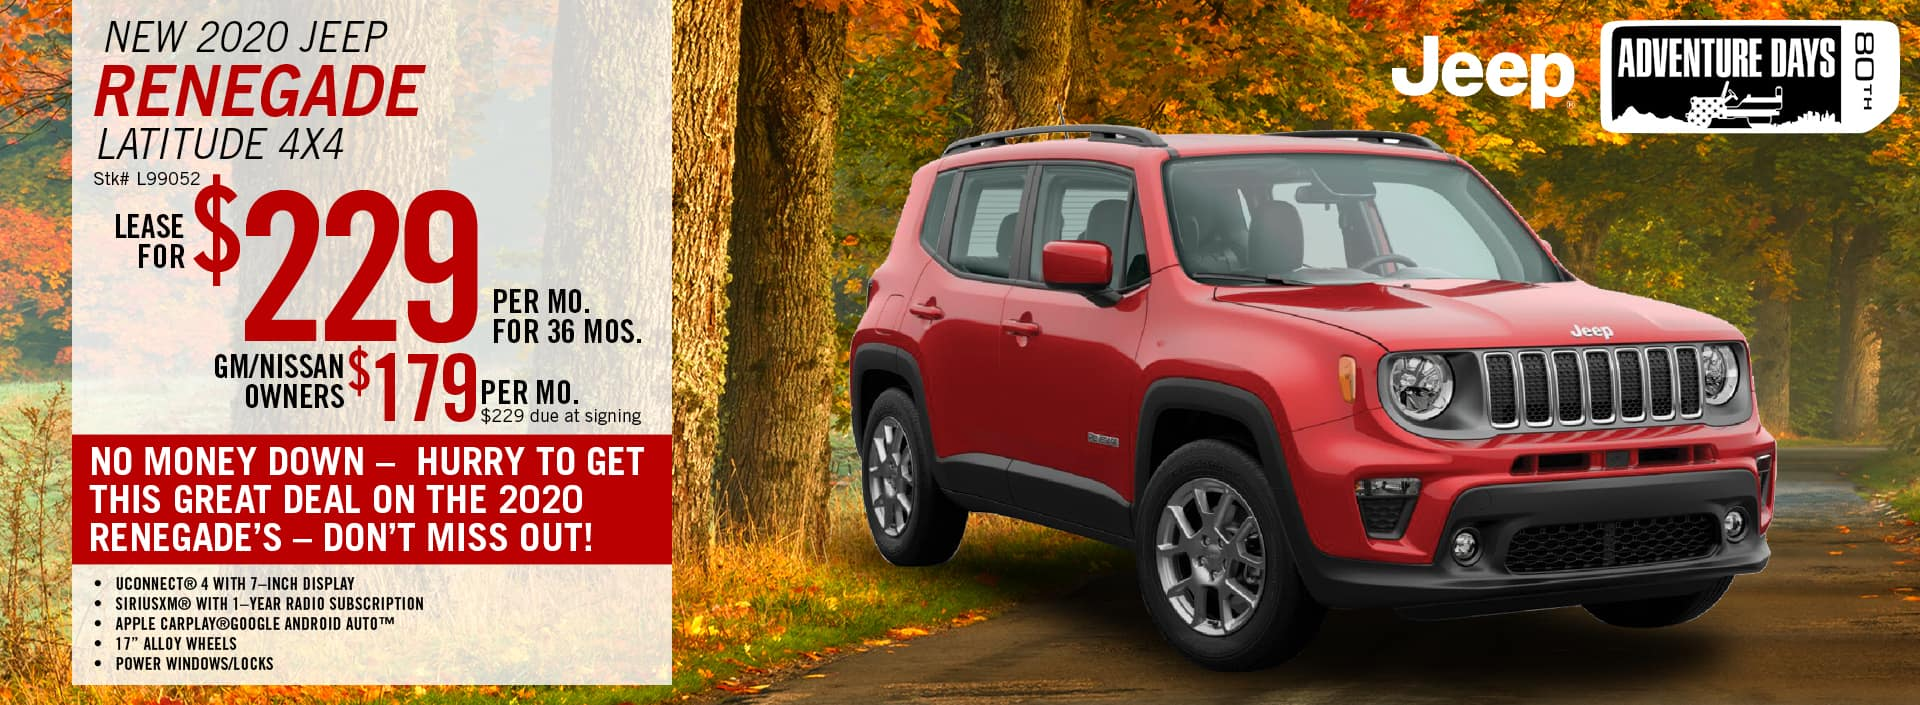 2020 Jeep Renegade Latitude Lease Offer | Barre, VT